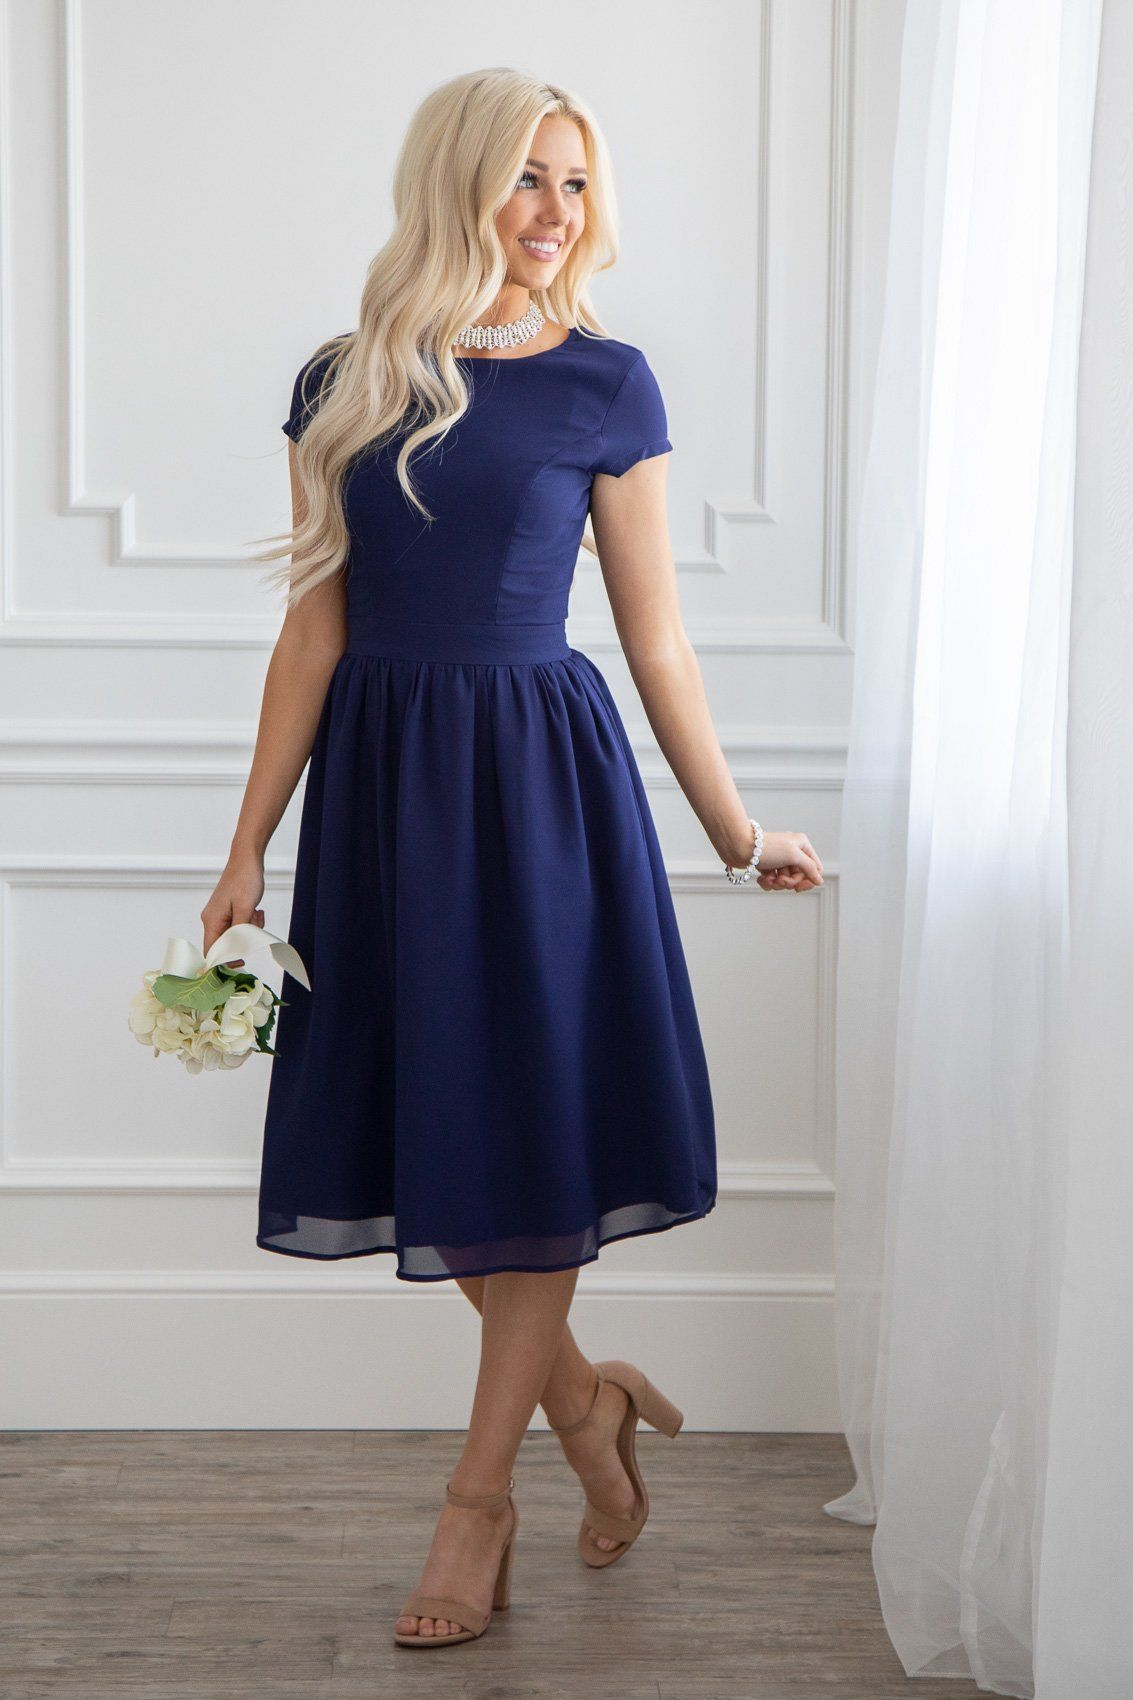 Restocked This Dress Is Perfect For Any Semi Formal Event And Makes A Great Modest Bridesmaid Dress Jen C Classy Dress Modest Dresses Modest Formal Dresses [ 1700 x 1133 Pixel ]